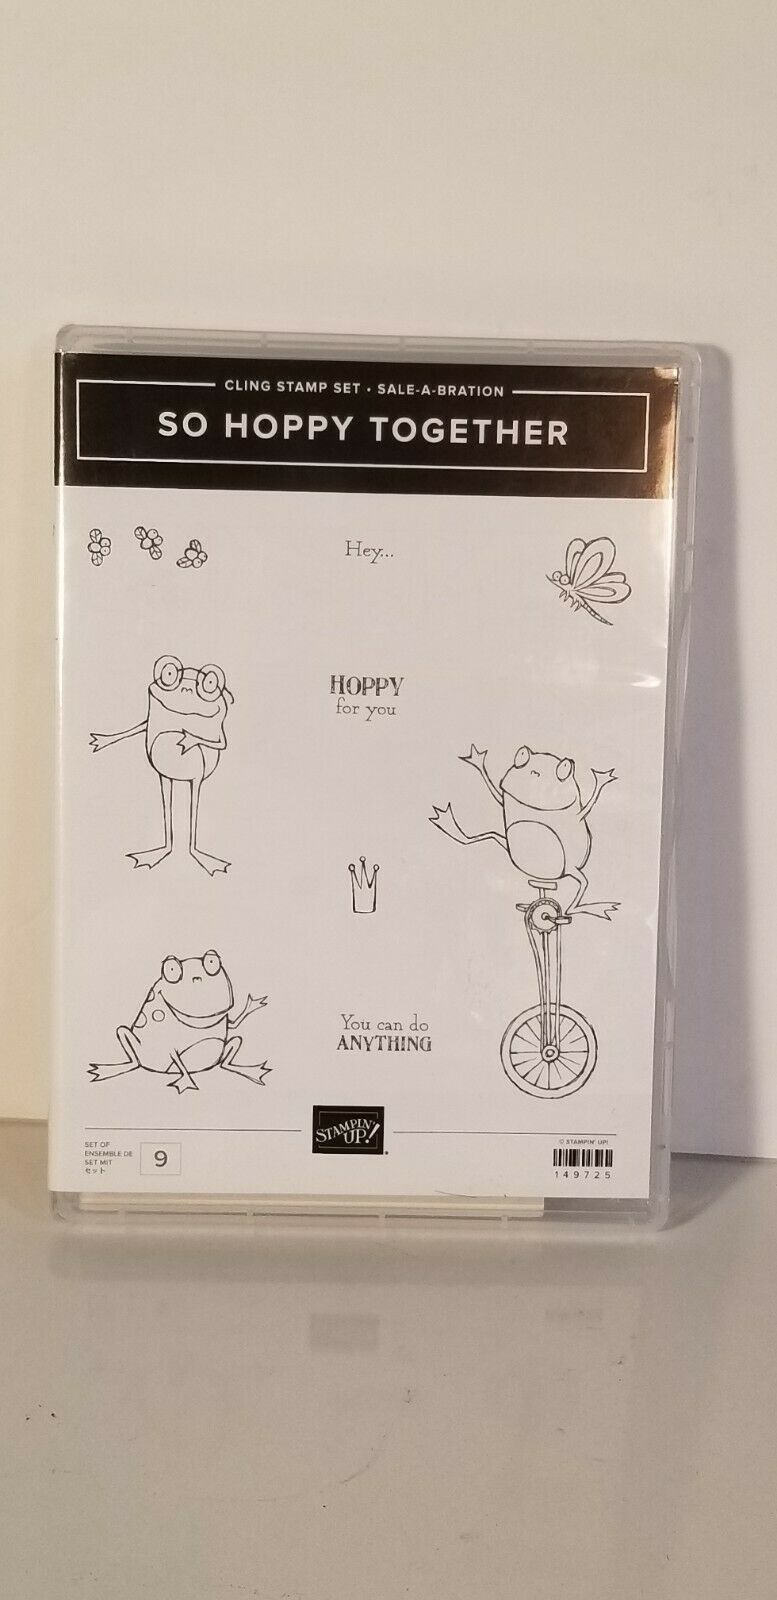 Primary image for STAMPIN' UP SO HOPPY TOGETHER Cling STAMP SET - Sale-A-Bration